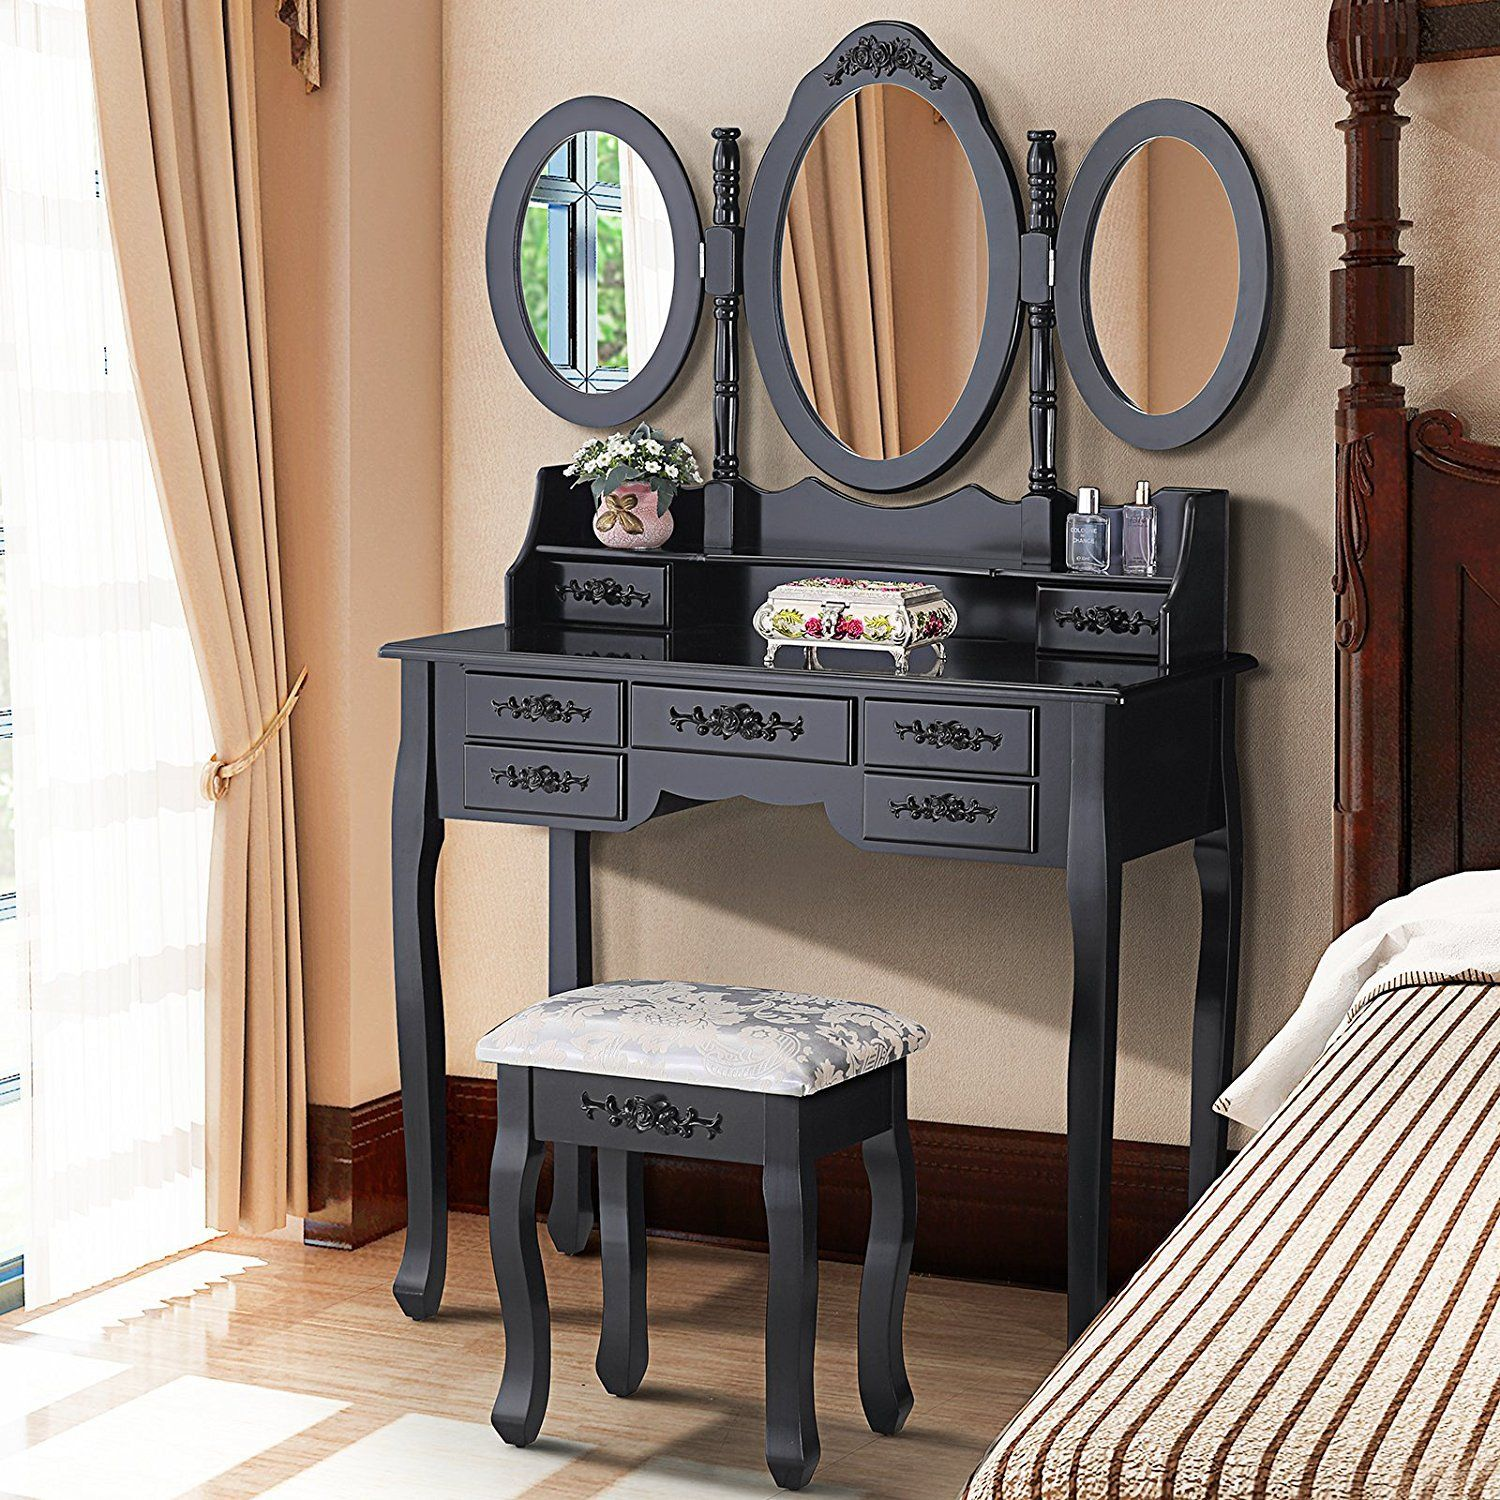 Mecor Vanity Table Set With Oval Mirror Makeup Dressing Table 7 Drawers And Cushioned Stool Black Dressing Table Vanity Vanity Table Set Mirrored Vanity Table